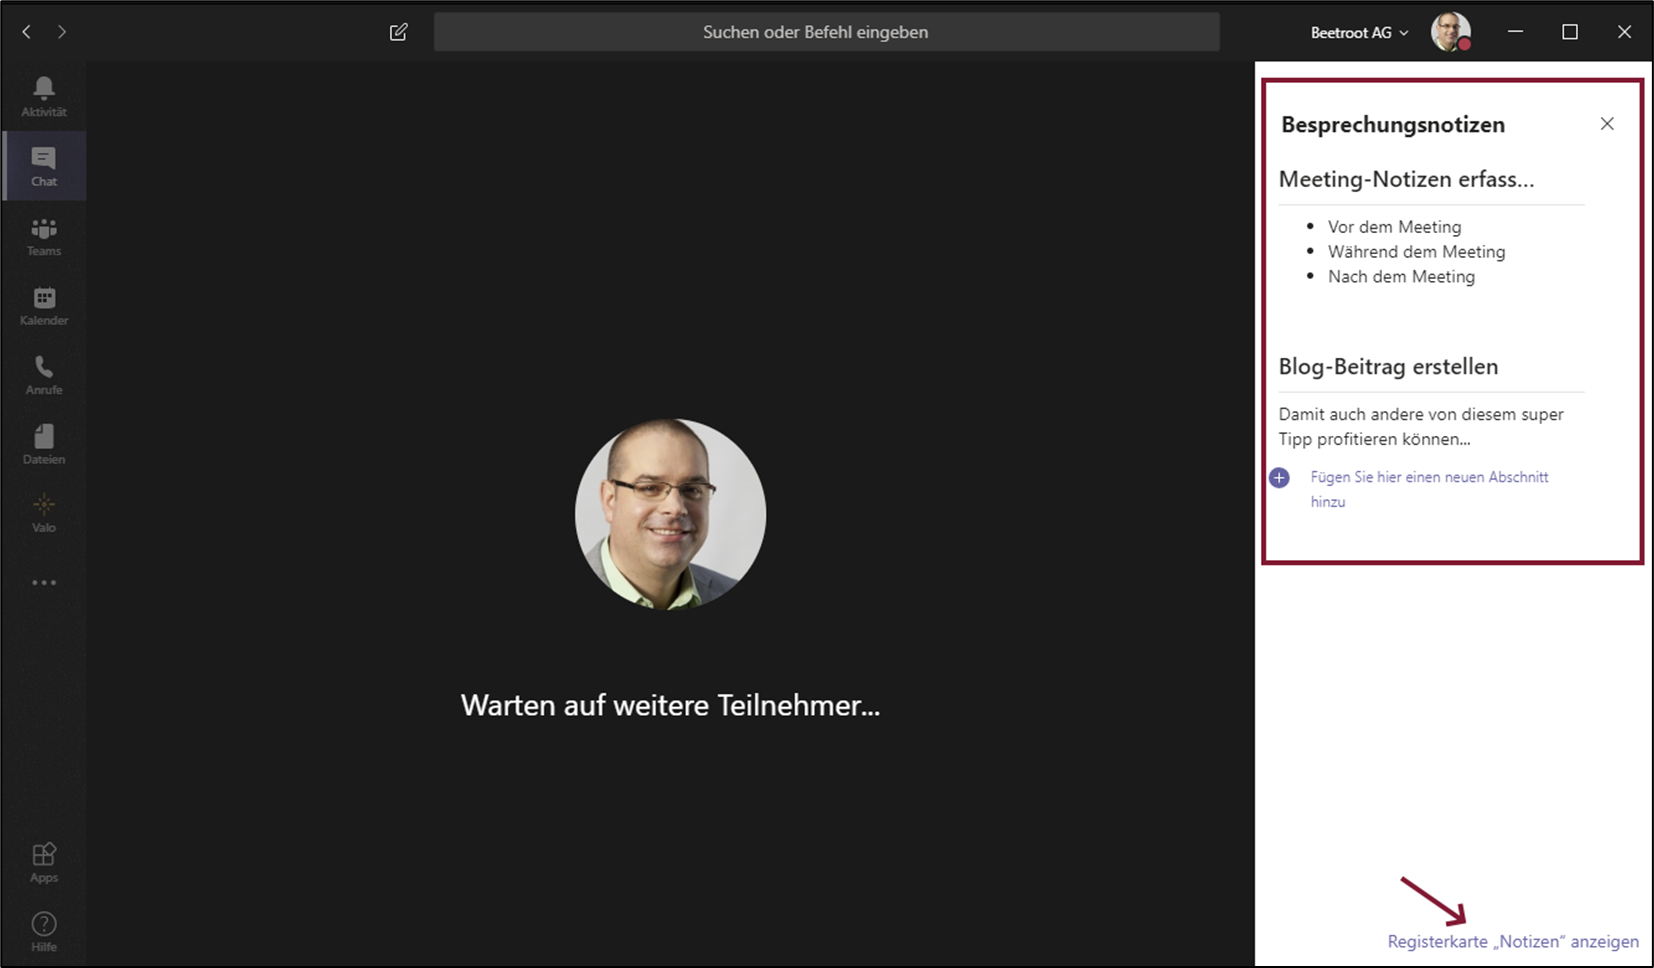 Microsoft Teams Besprechungsnotizen während Meeting Valo Intranet Digital Workplace Intranet Lösung